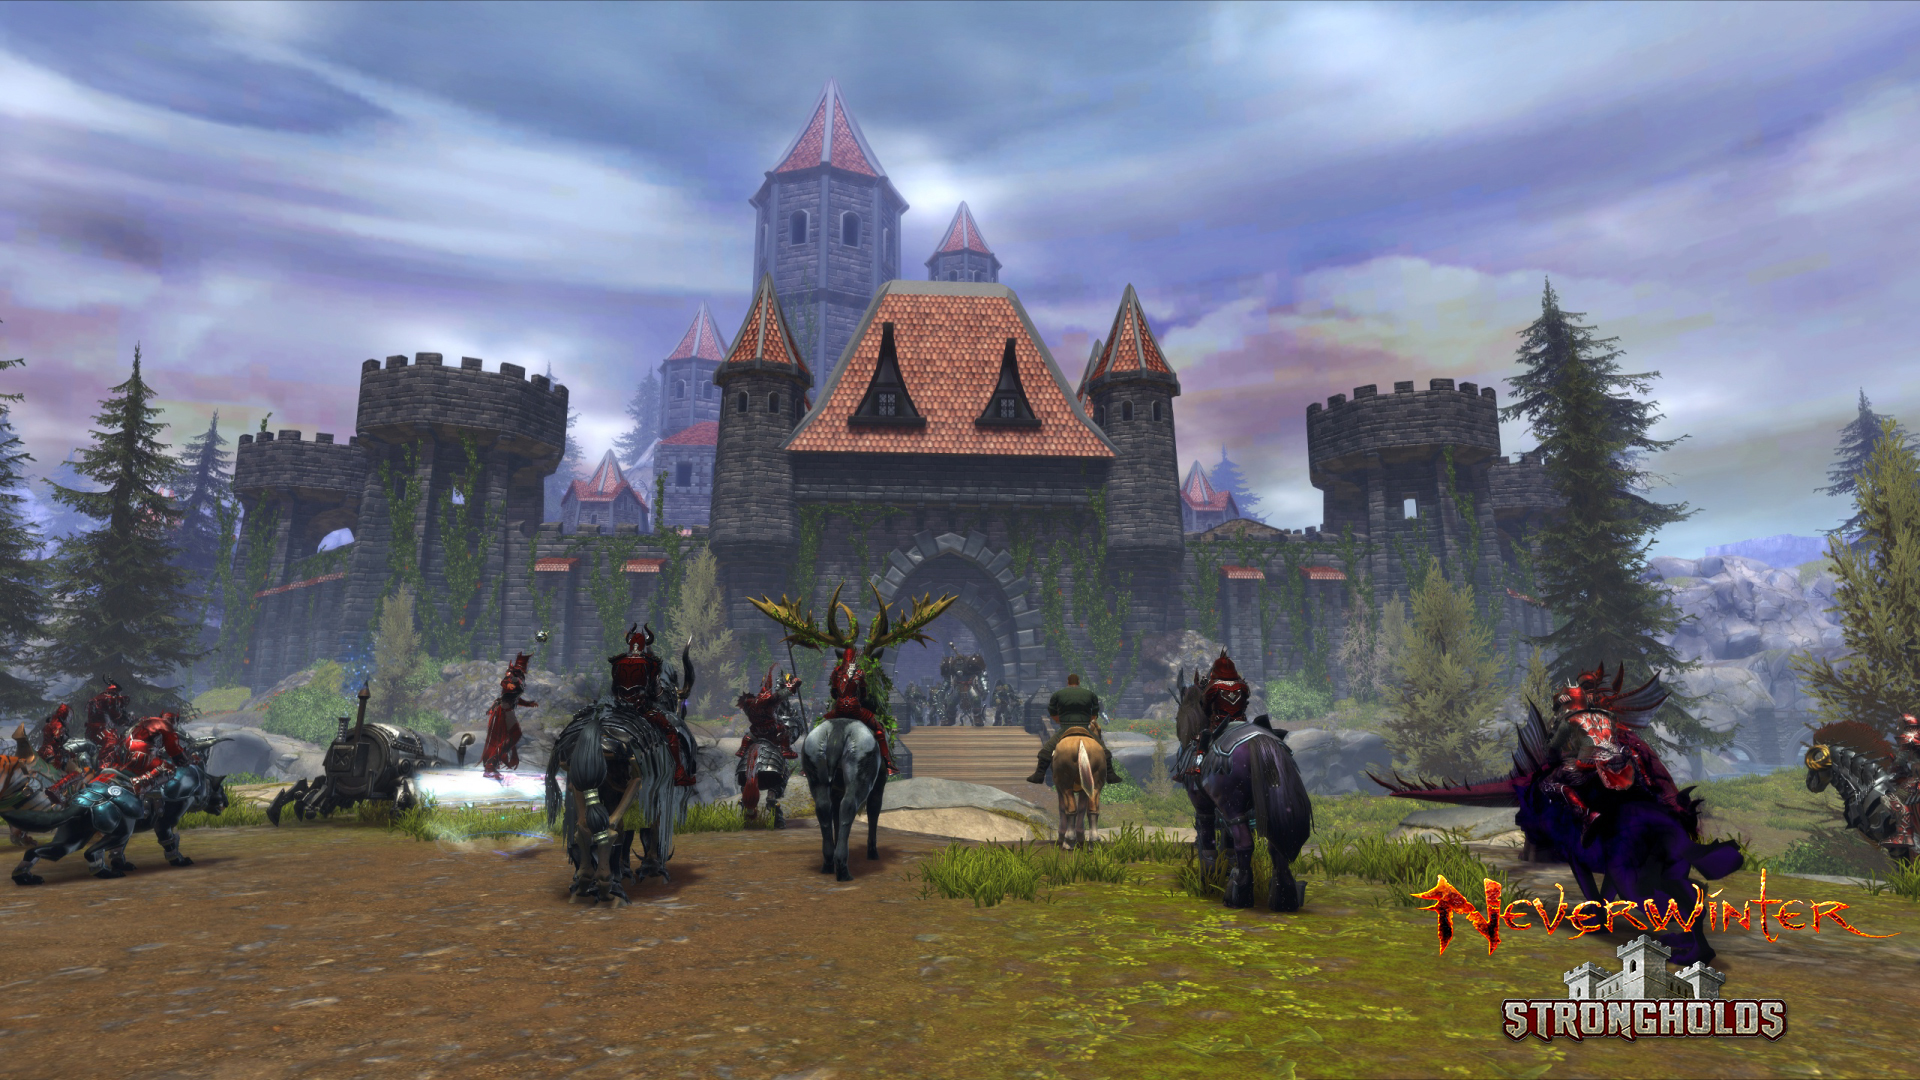 Mmorpg games free no download like runescape « Best Aircraft Games